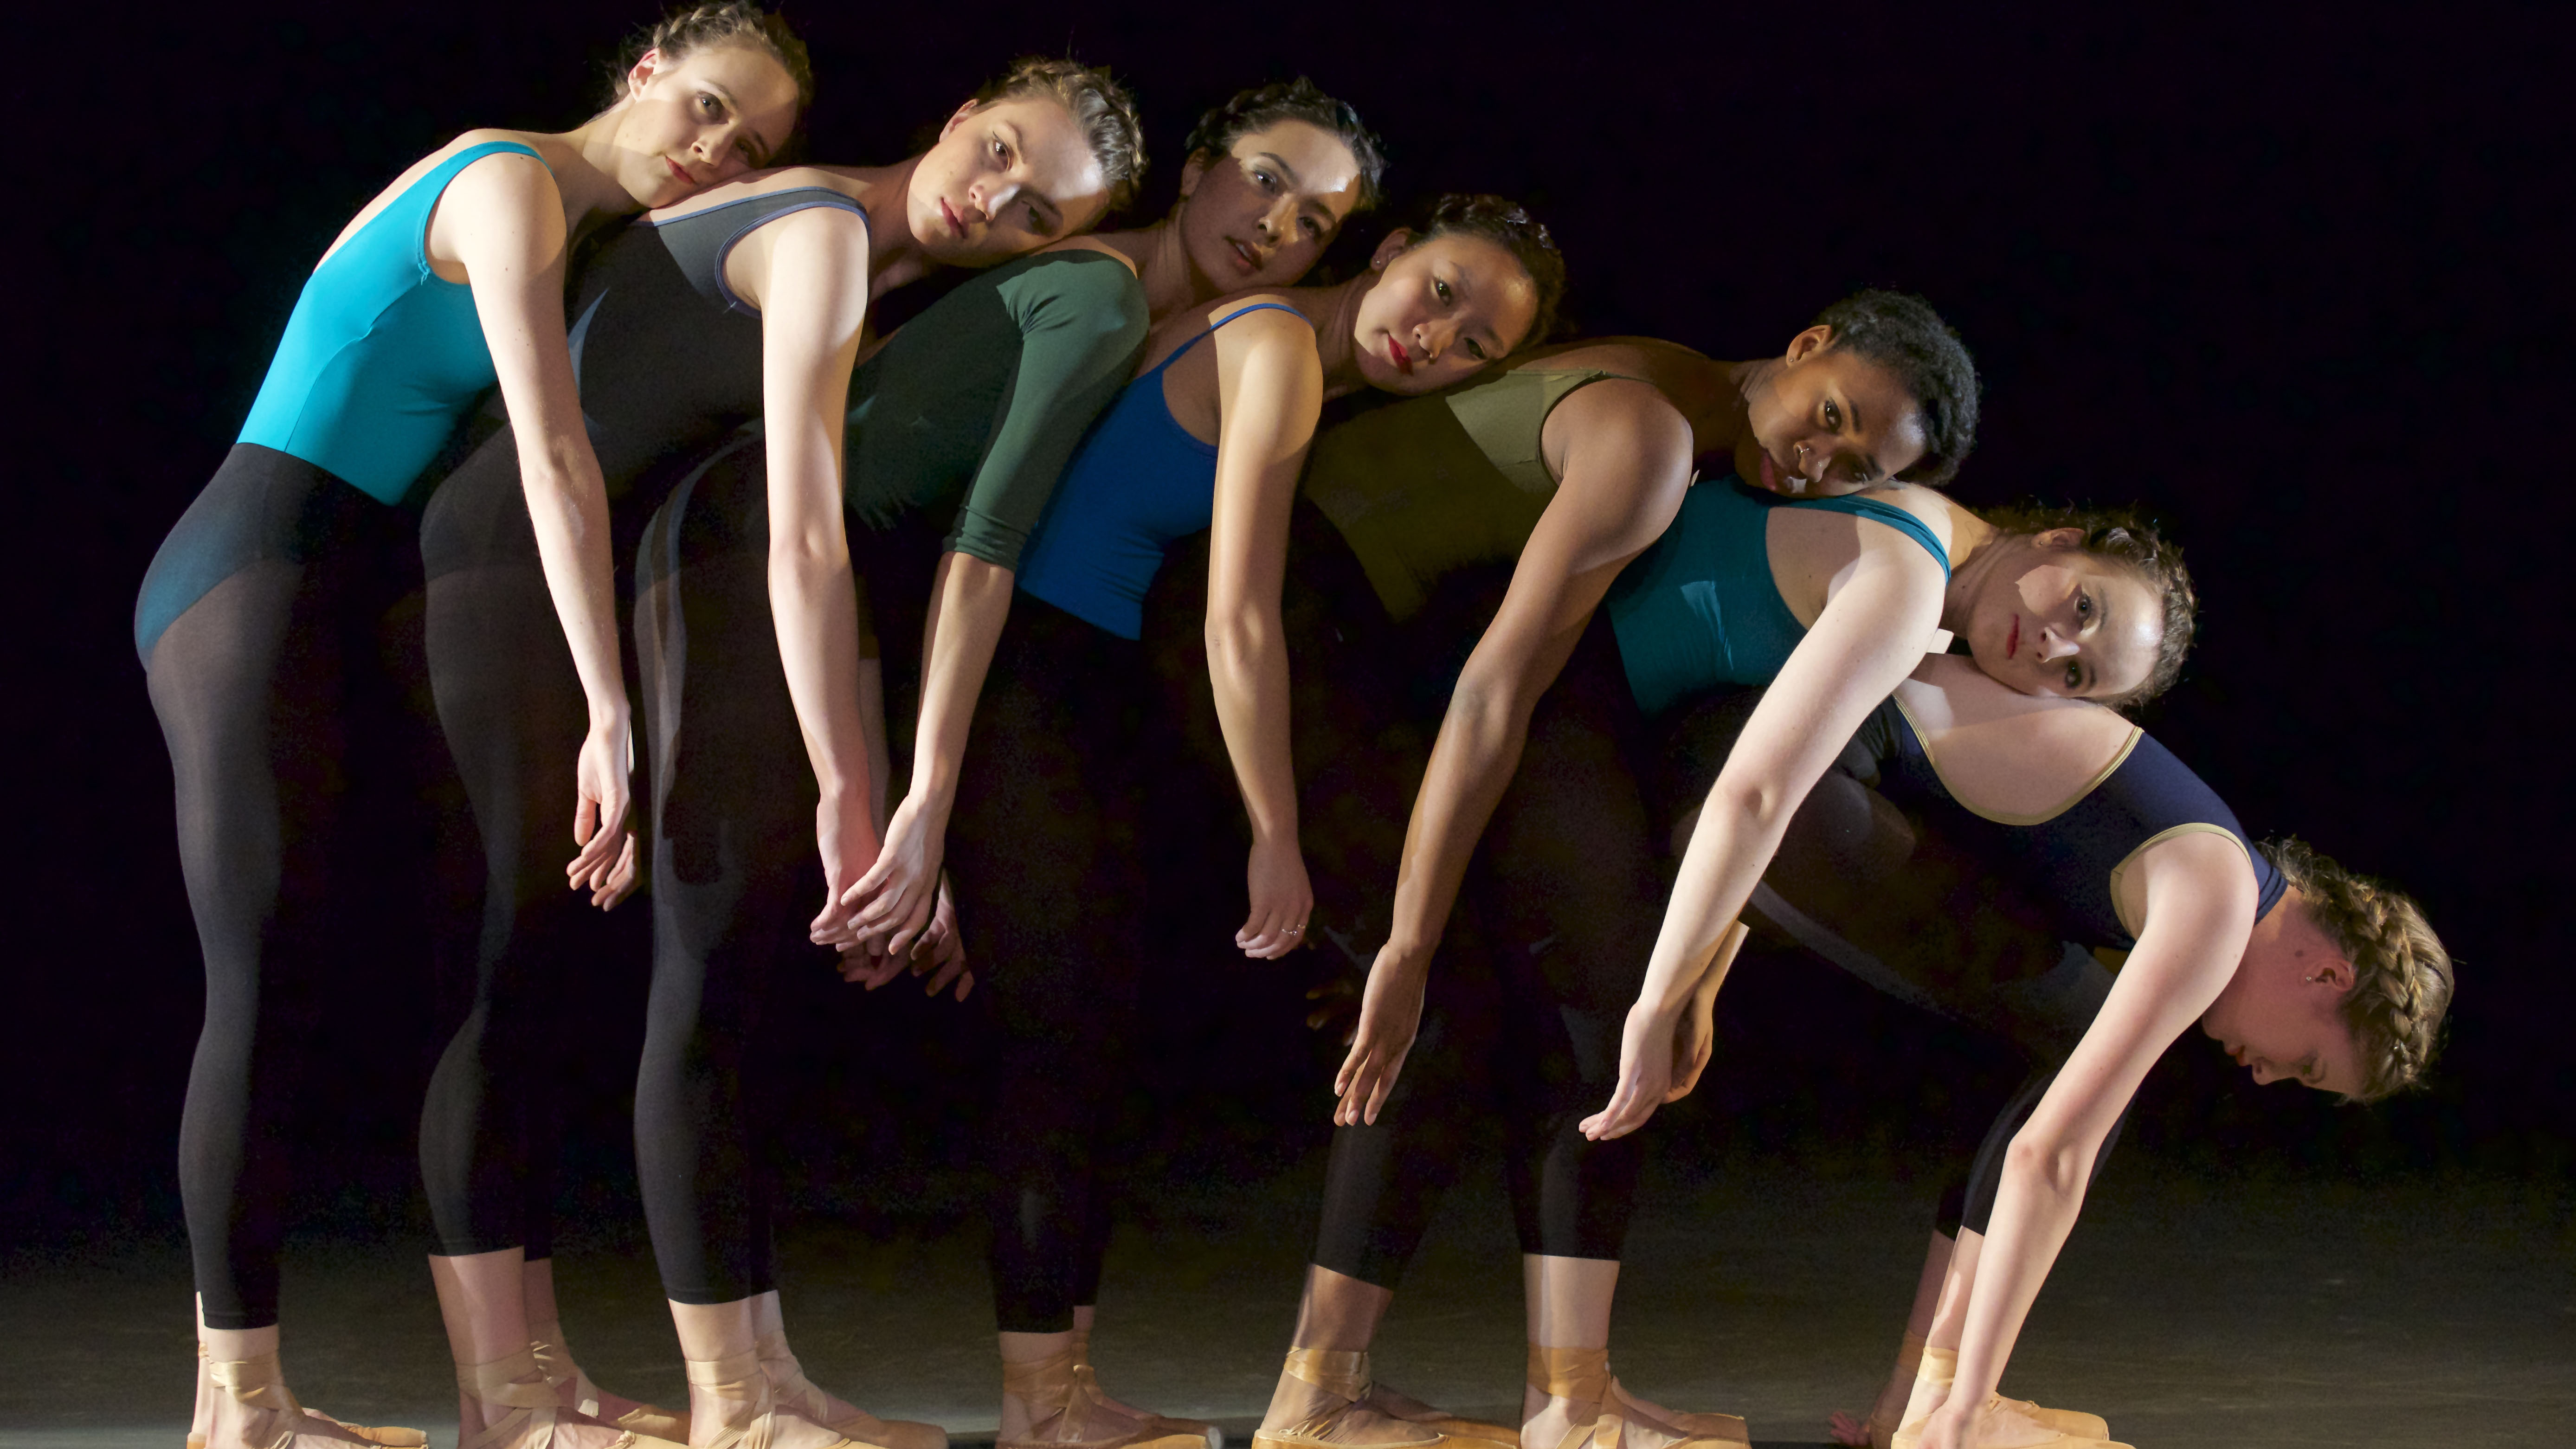 An esprit for choreography and dance kinesiology.